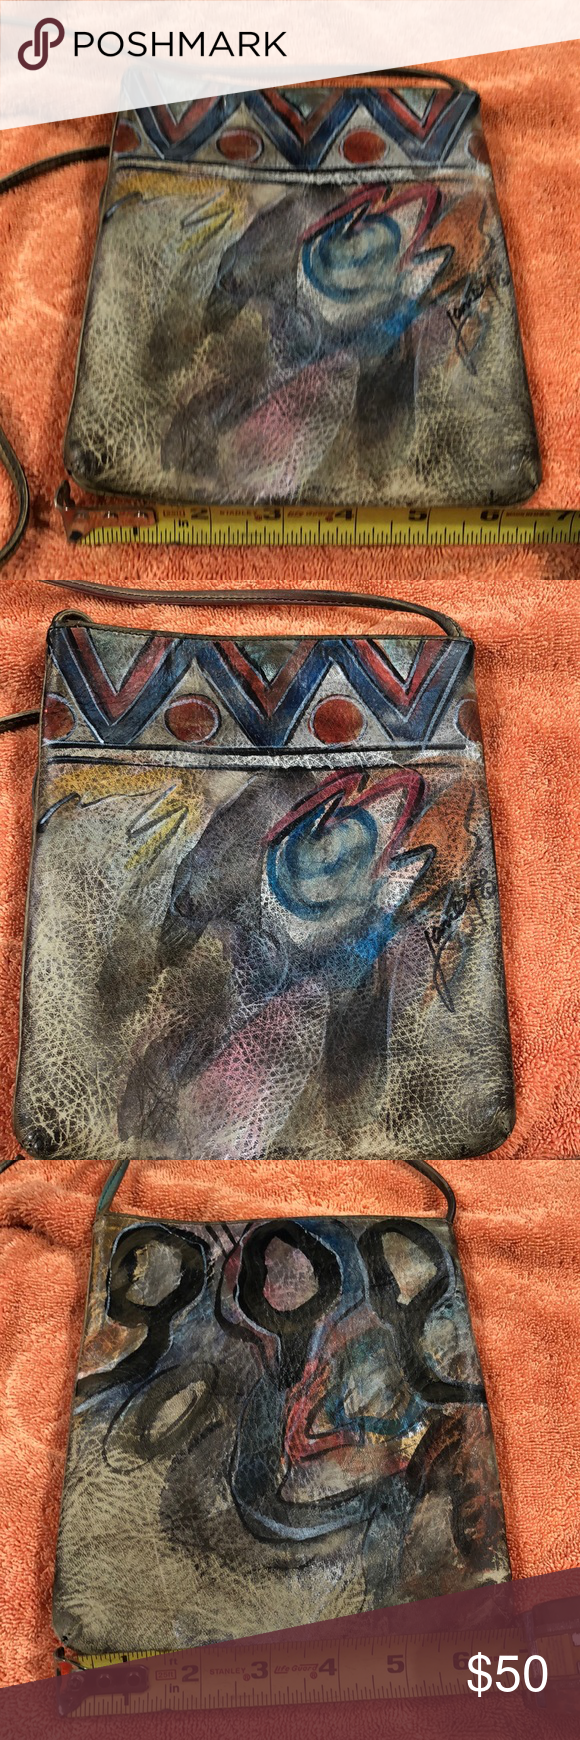 Jane Yoo Purse (With images) Wearable art, Purses